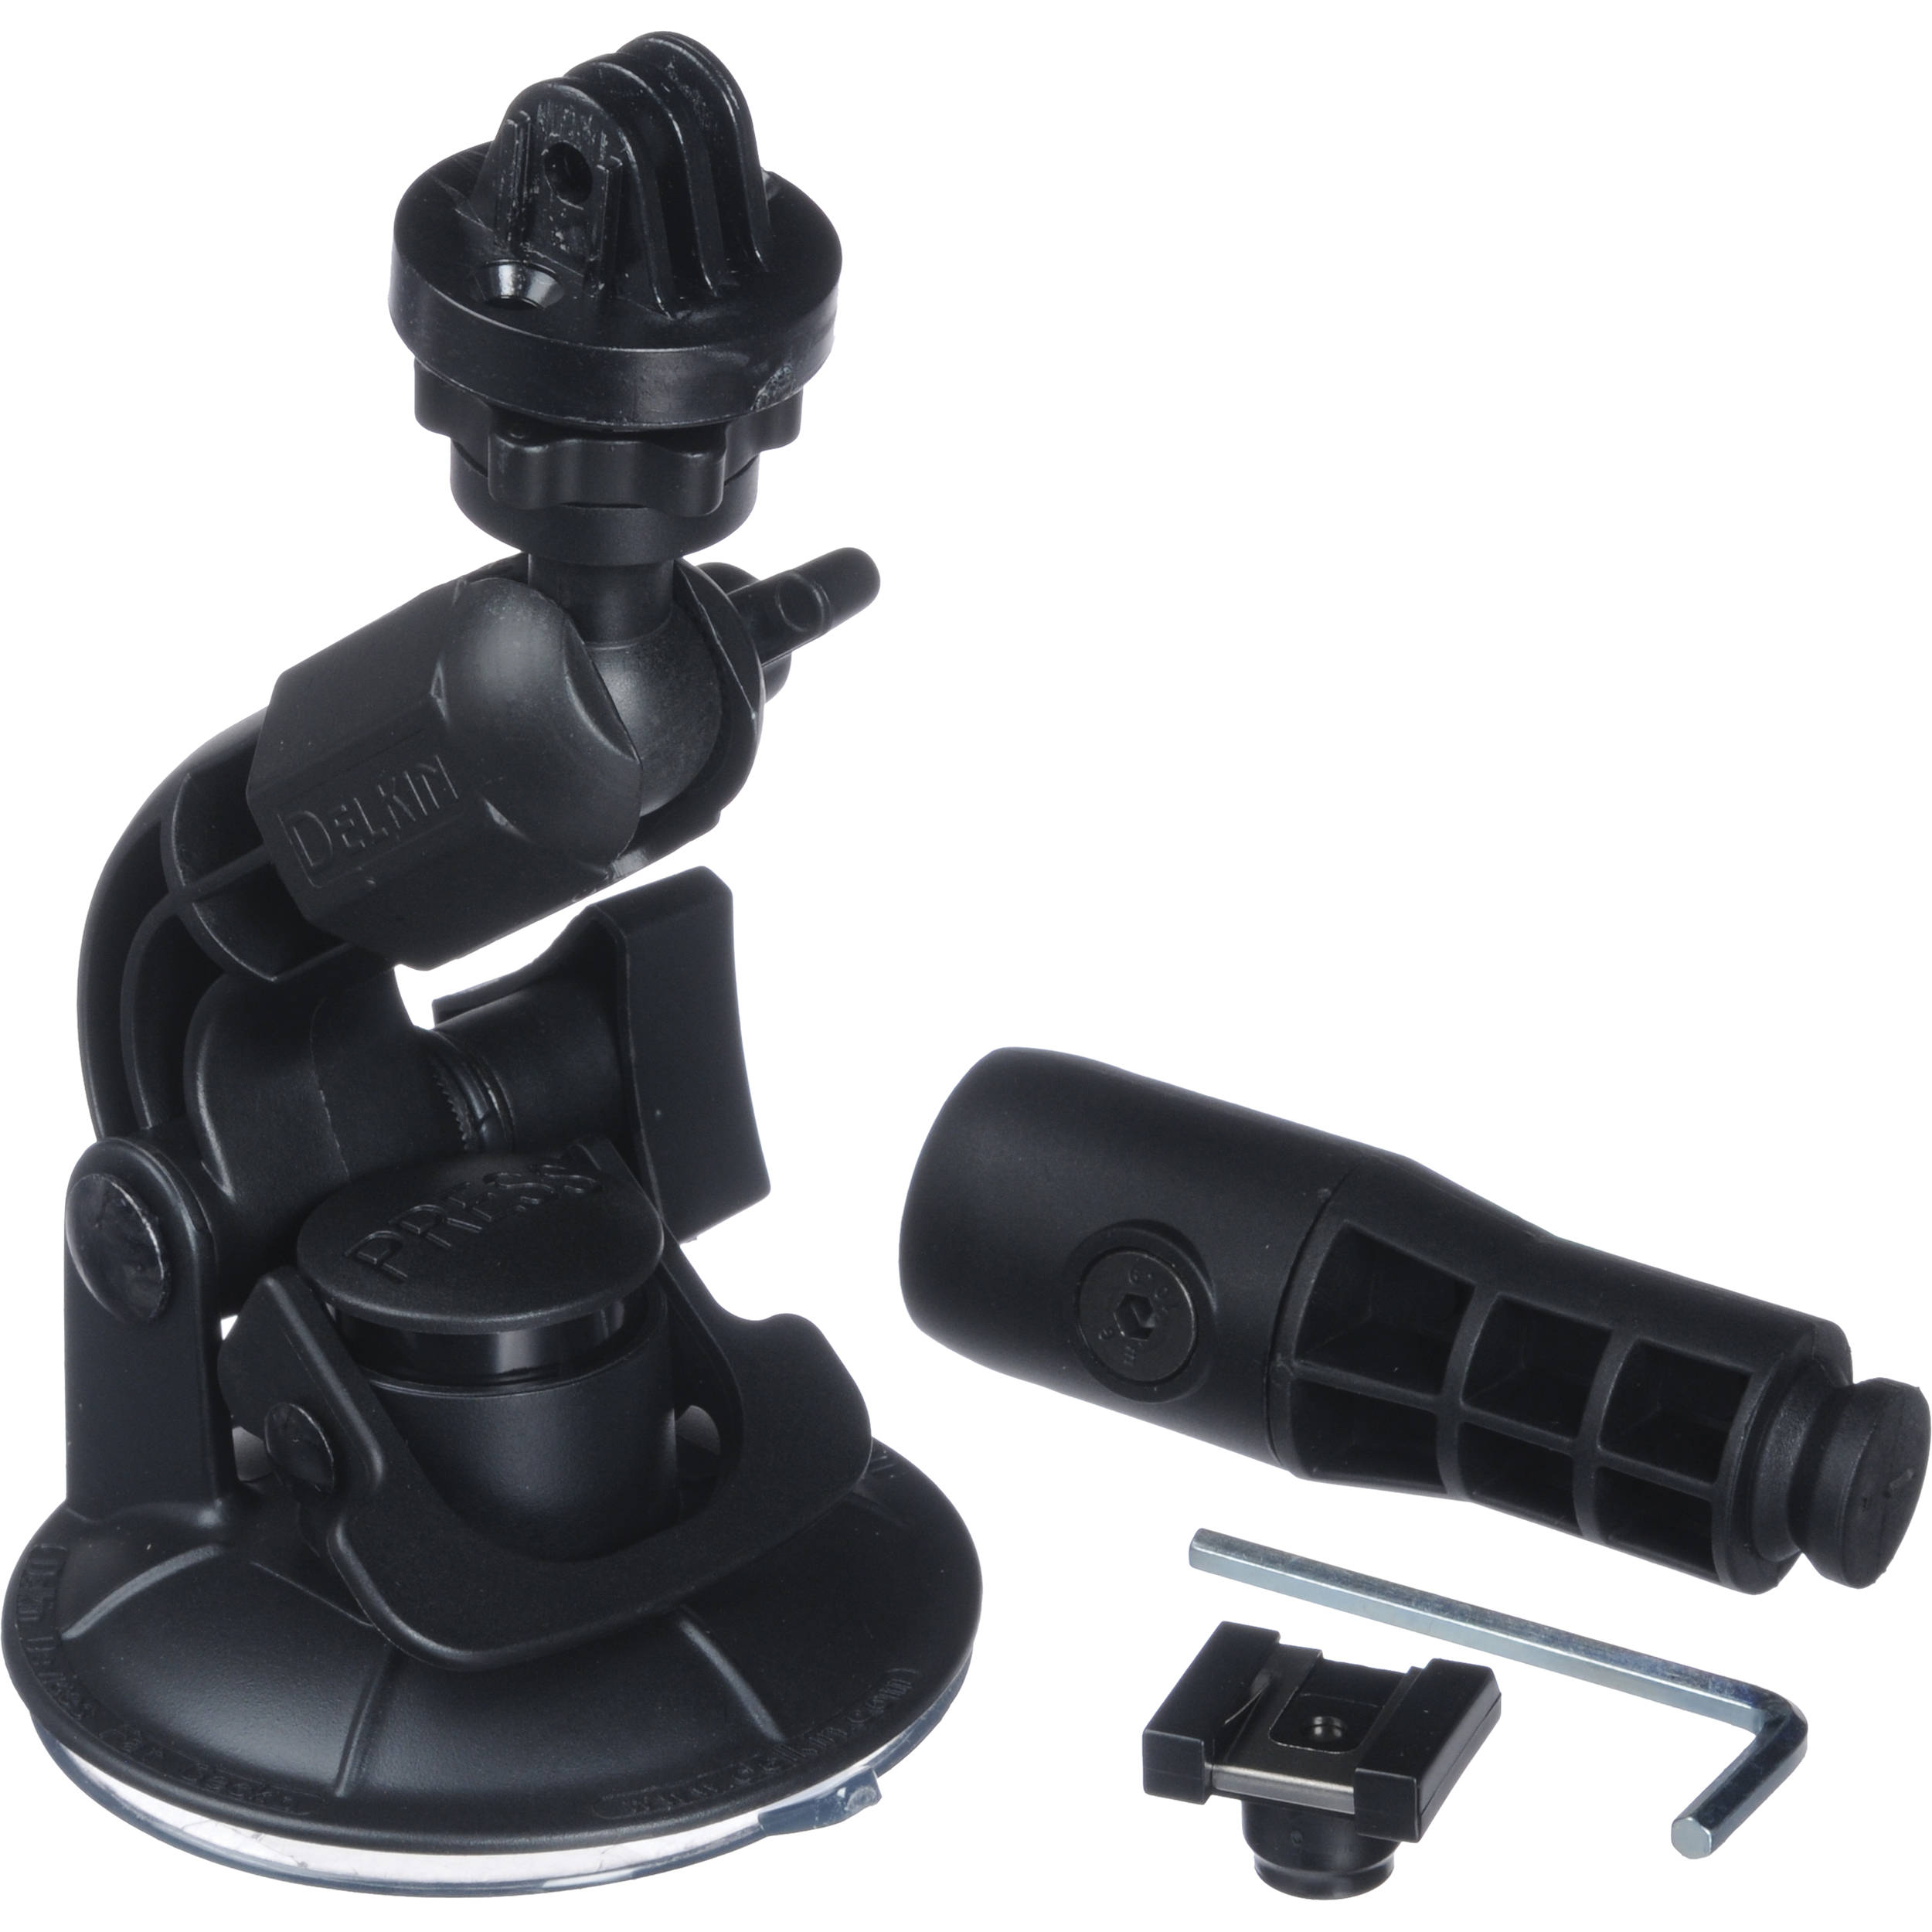 Suction Cup Mounts | B&H Photo Video